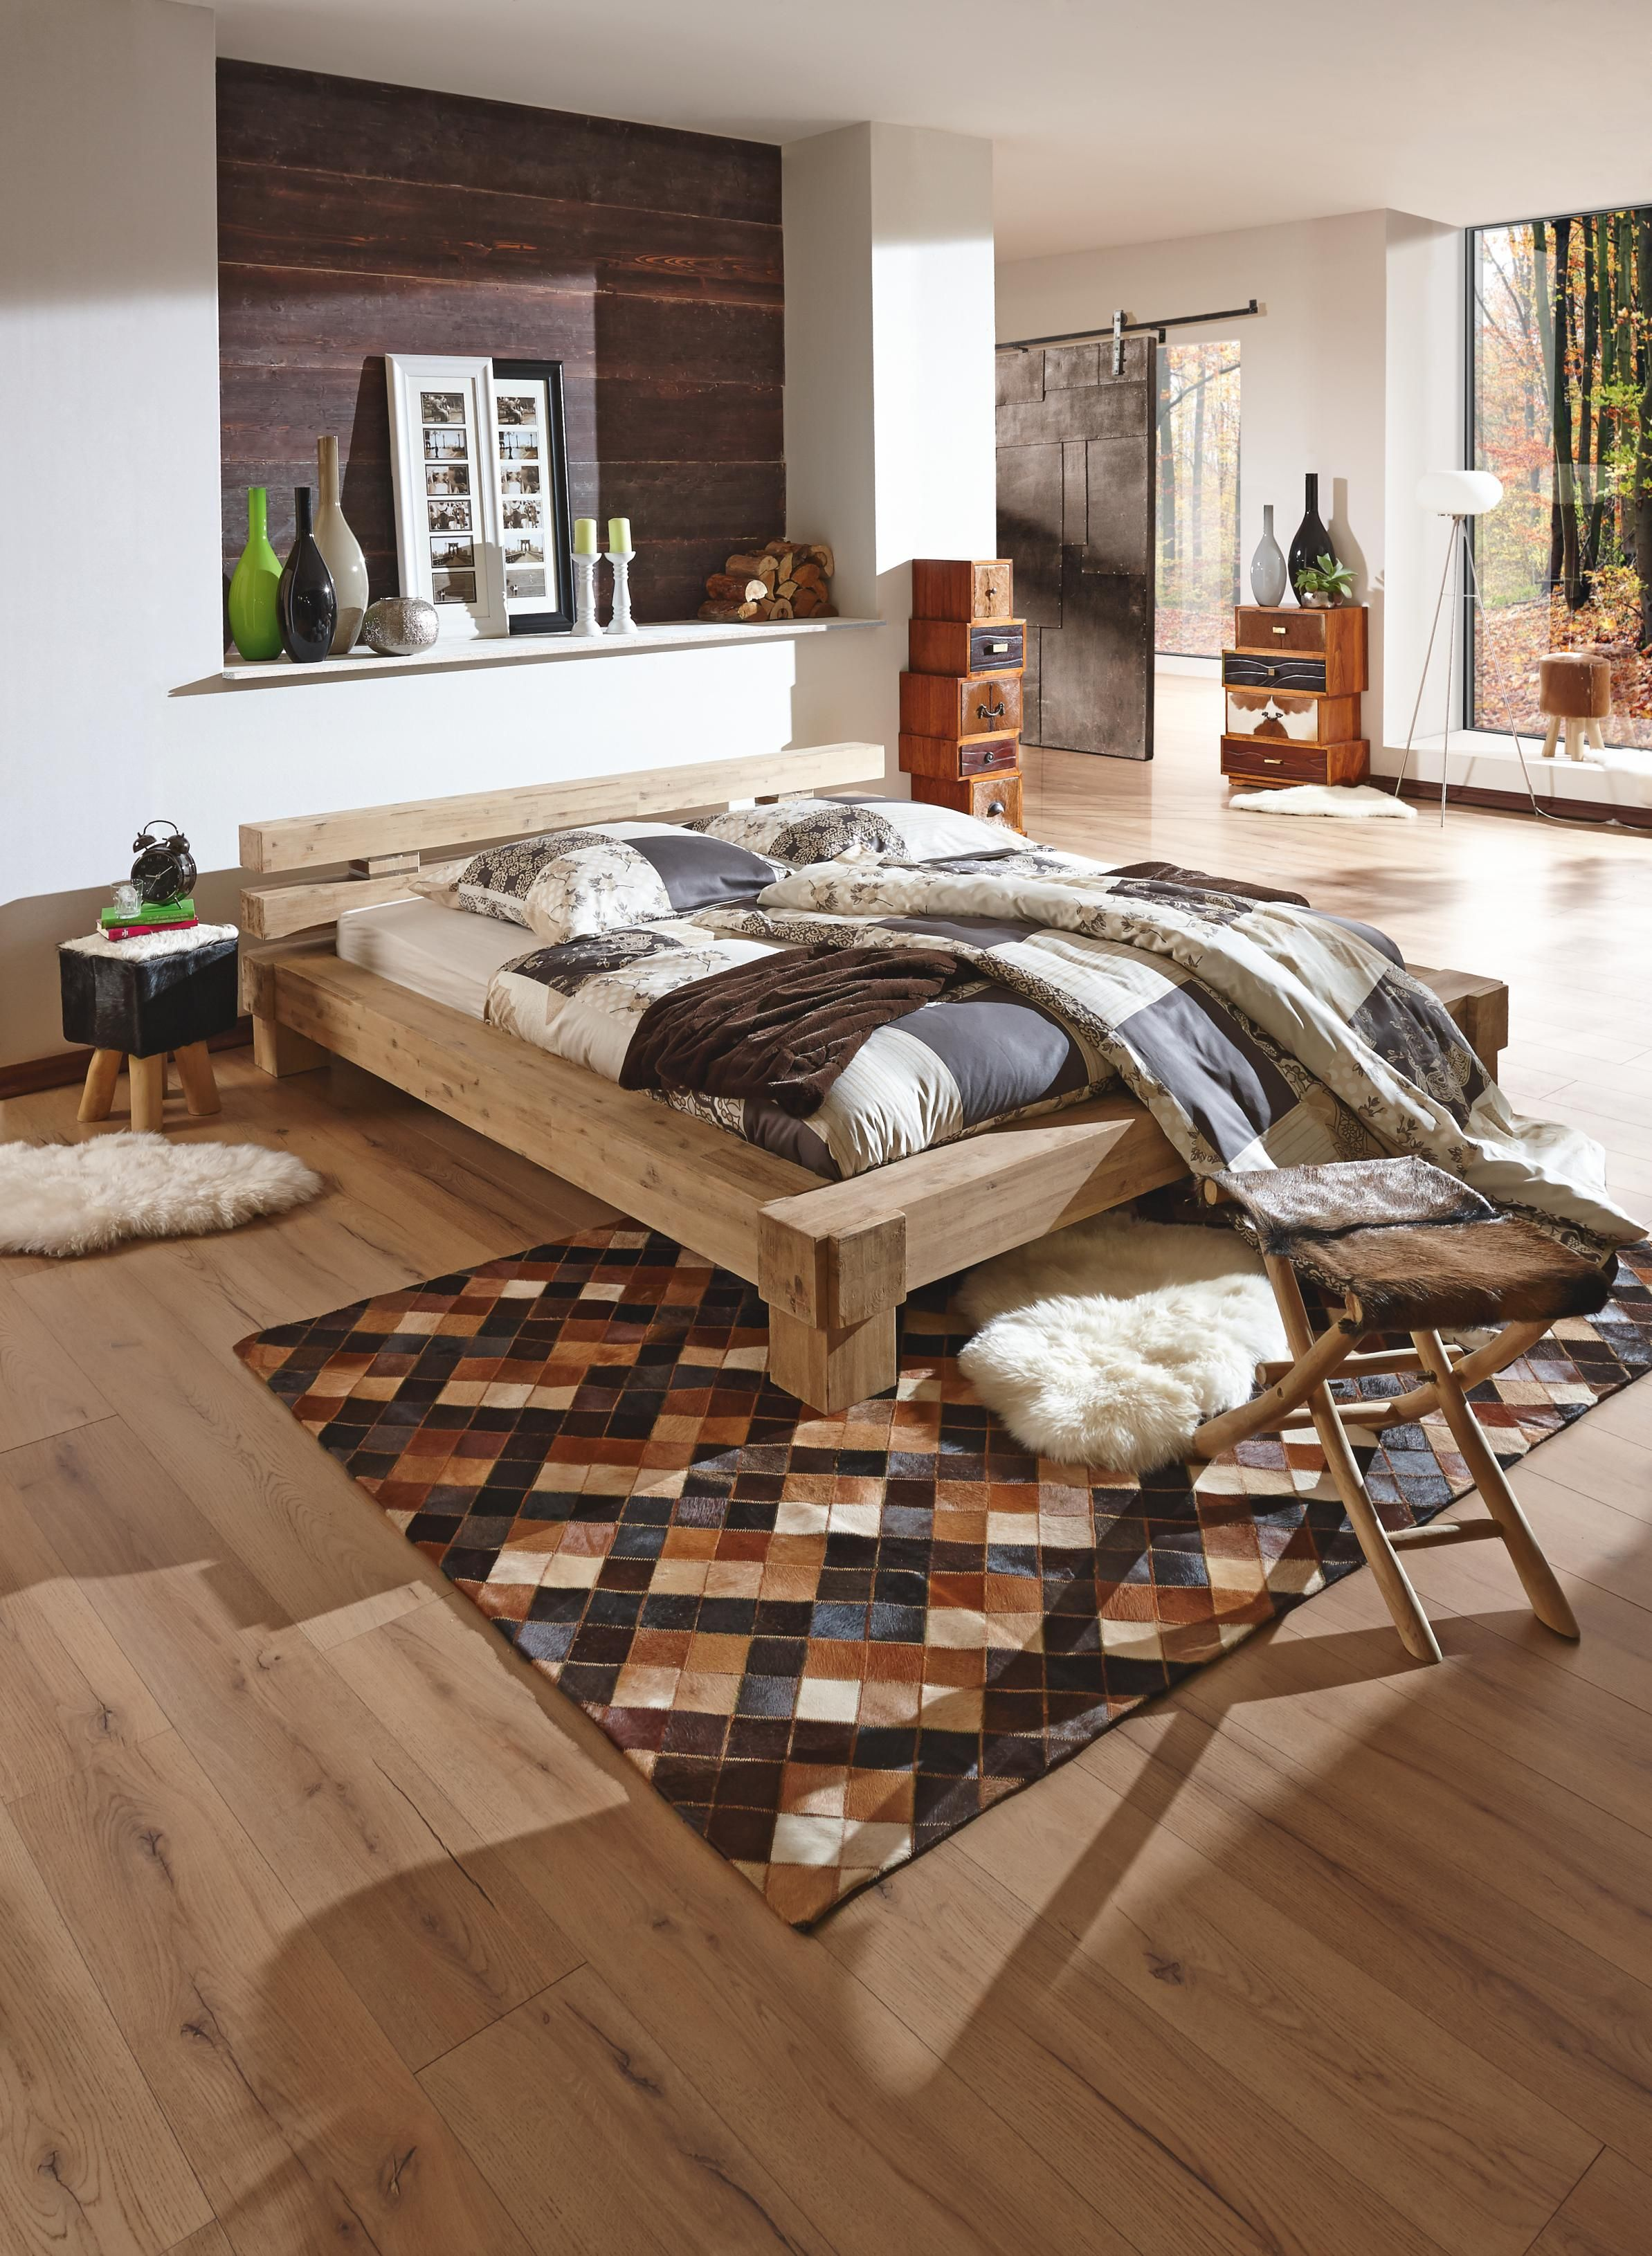 images about Furniture Indoor on Pinterest Low beds